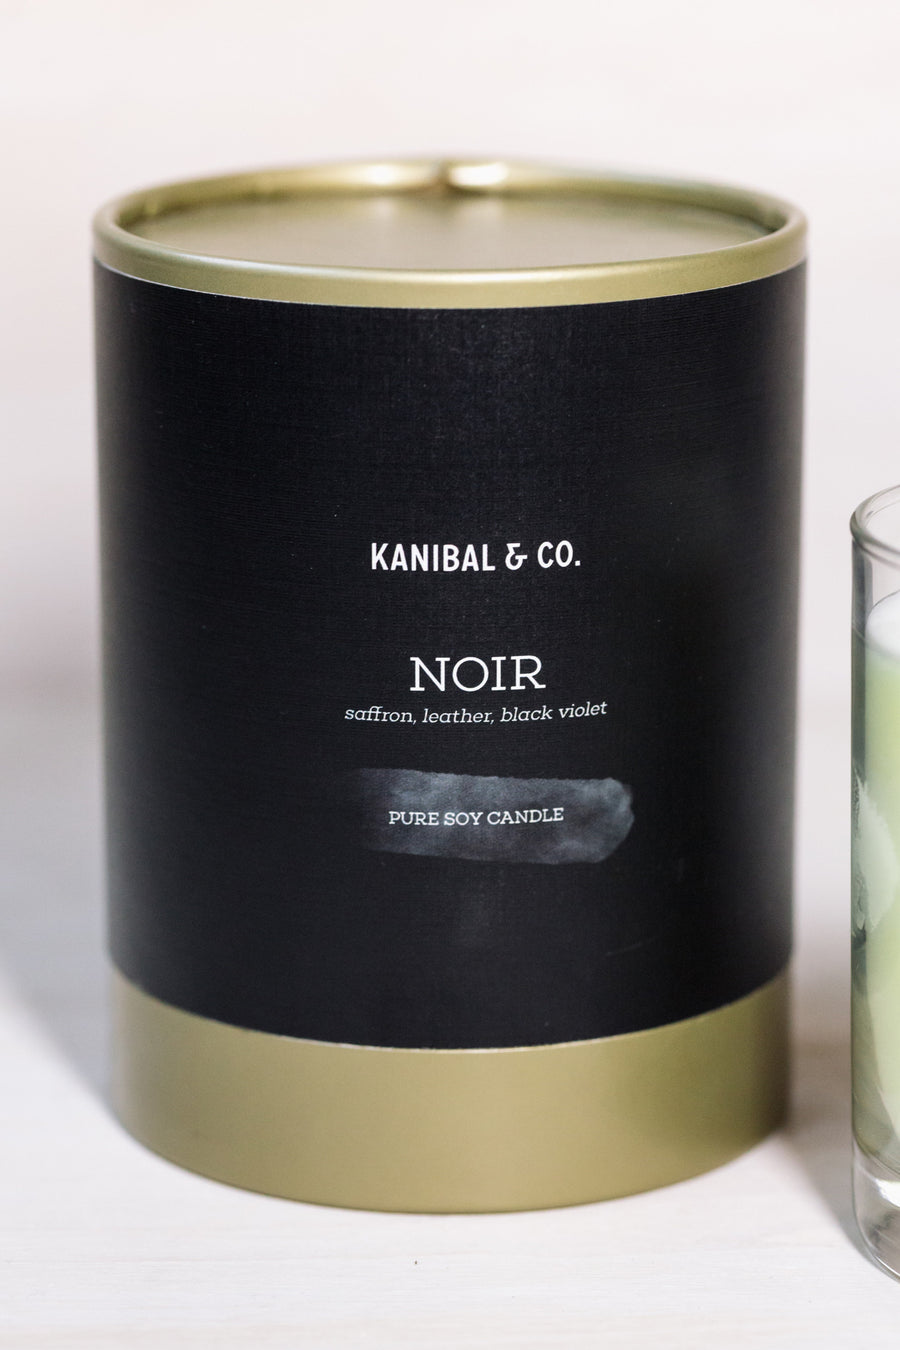 Noir scented candle, box